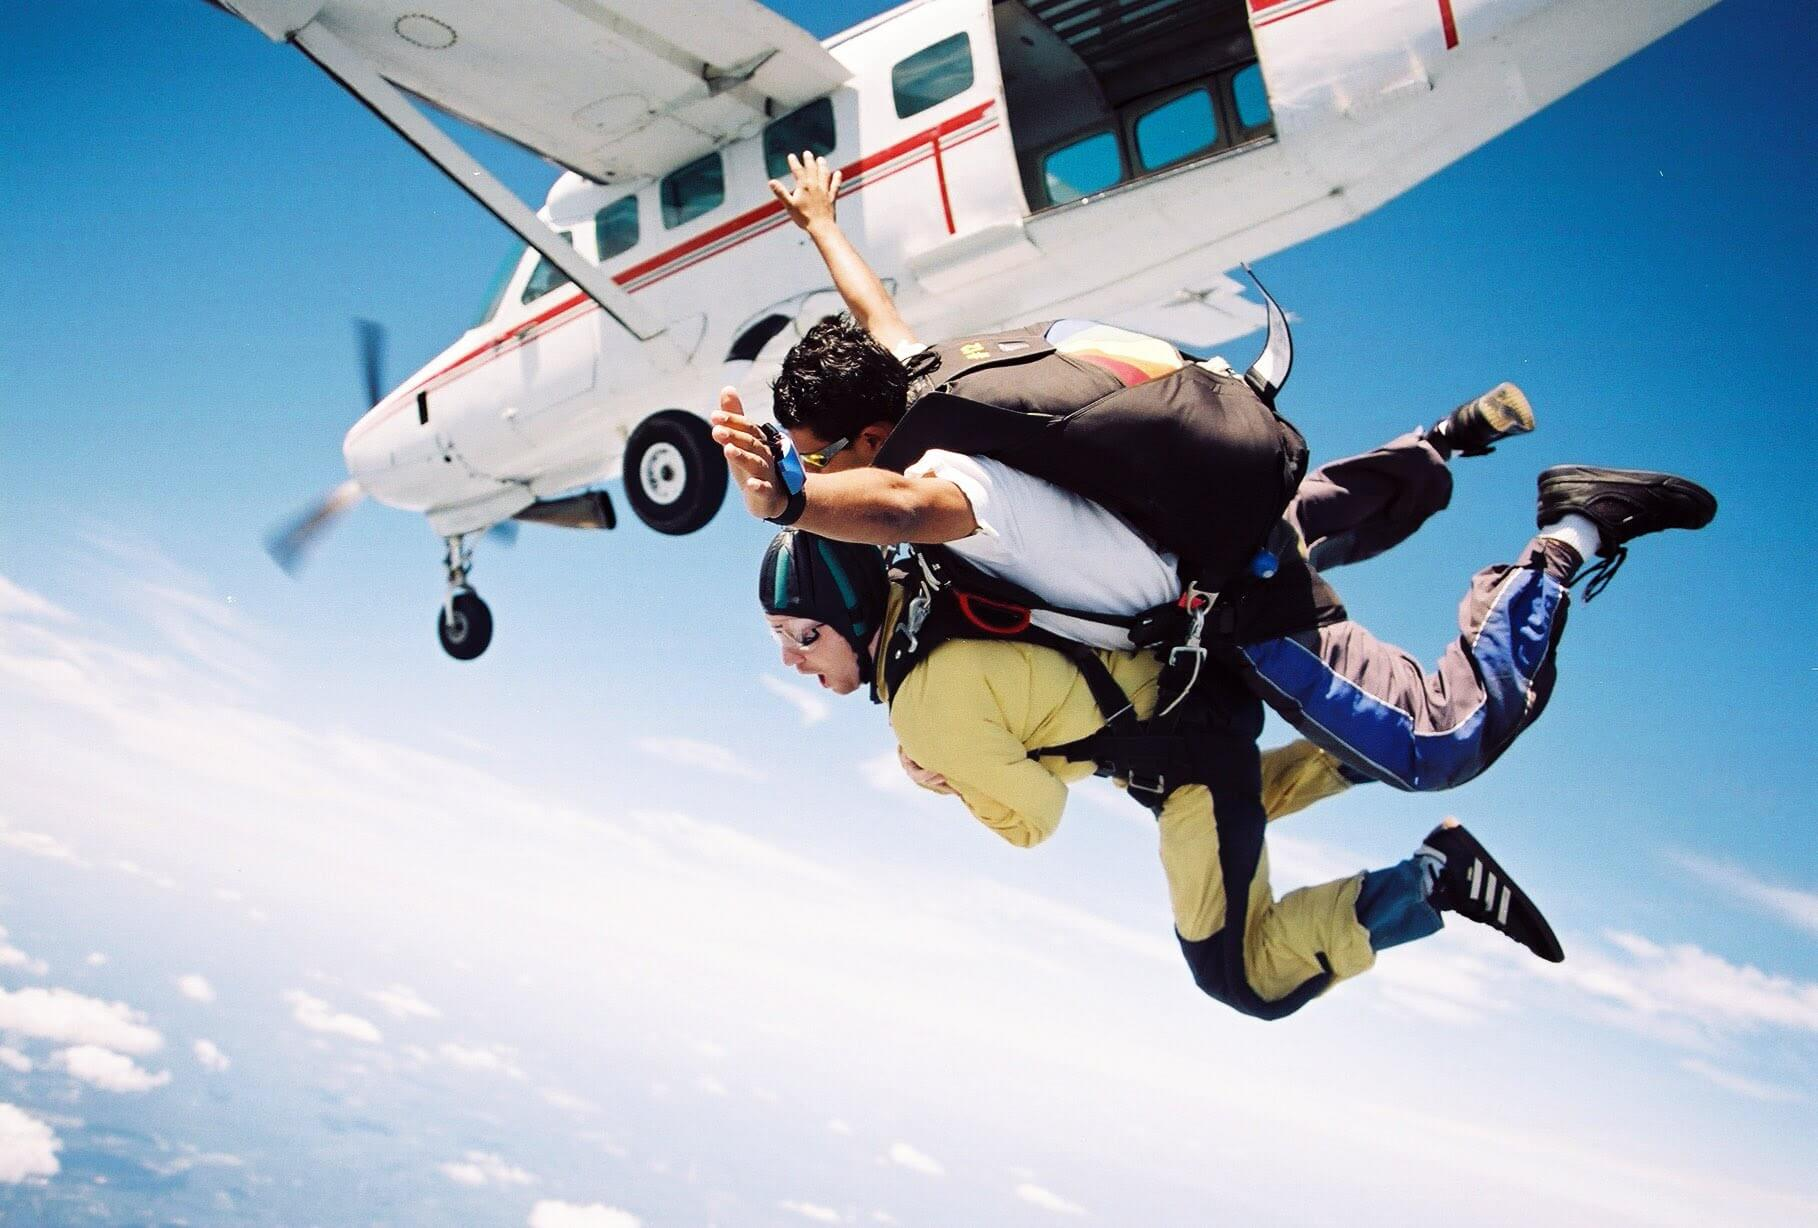 A picture of Skydiving